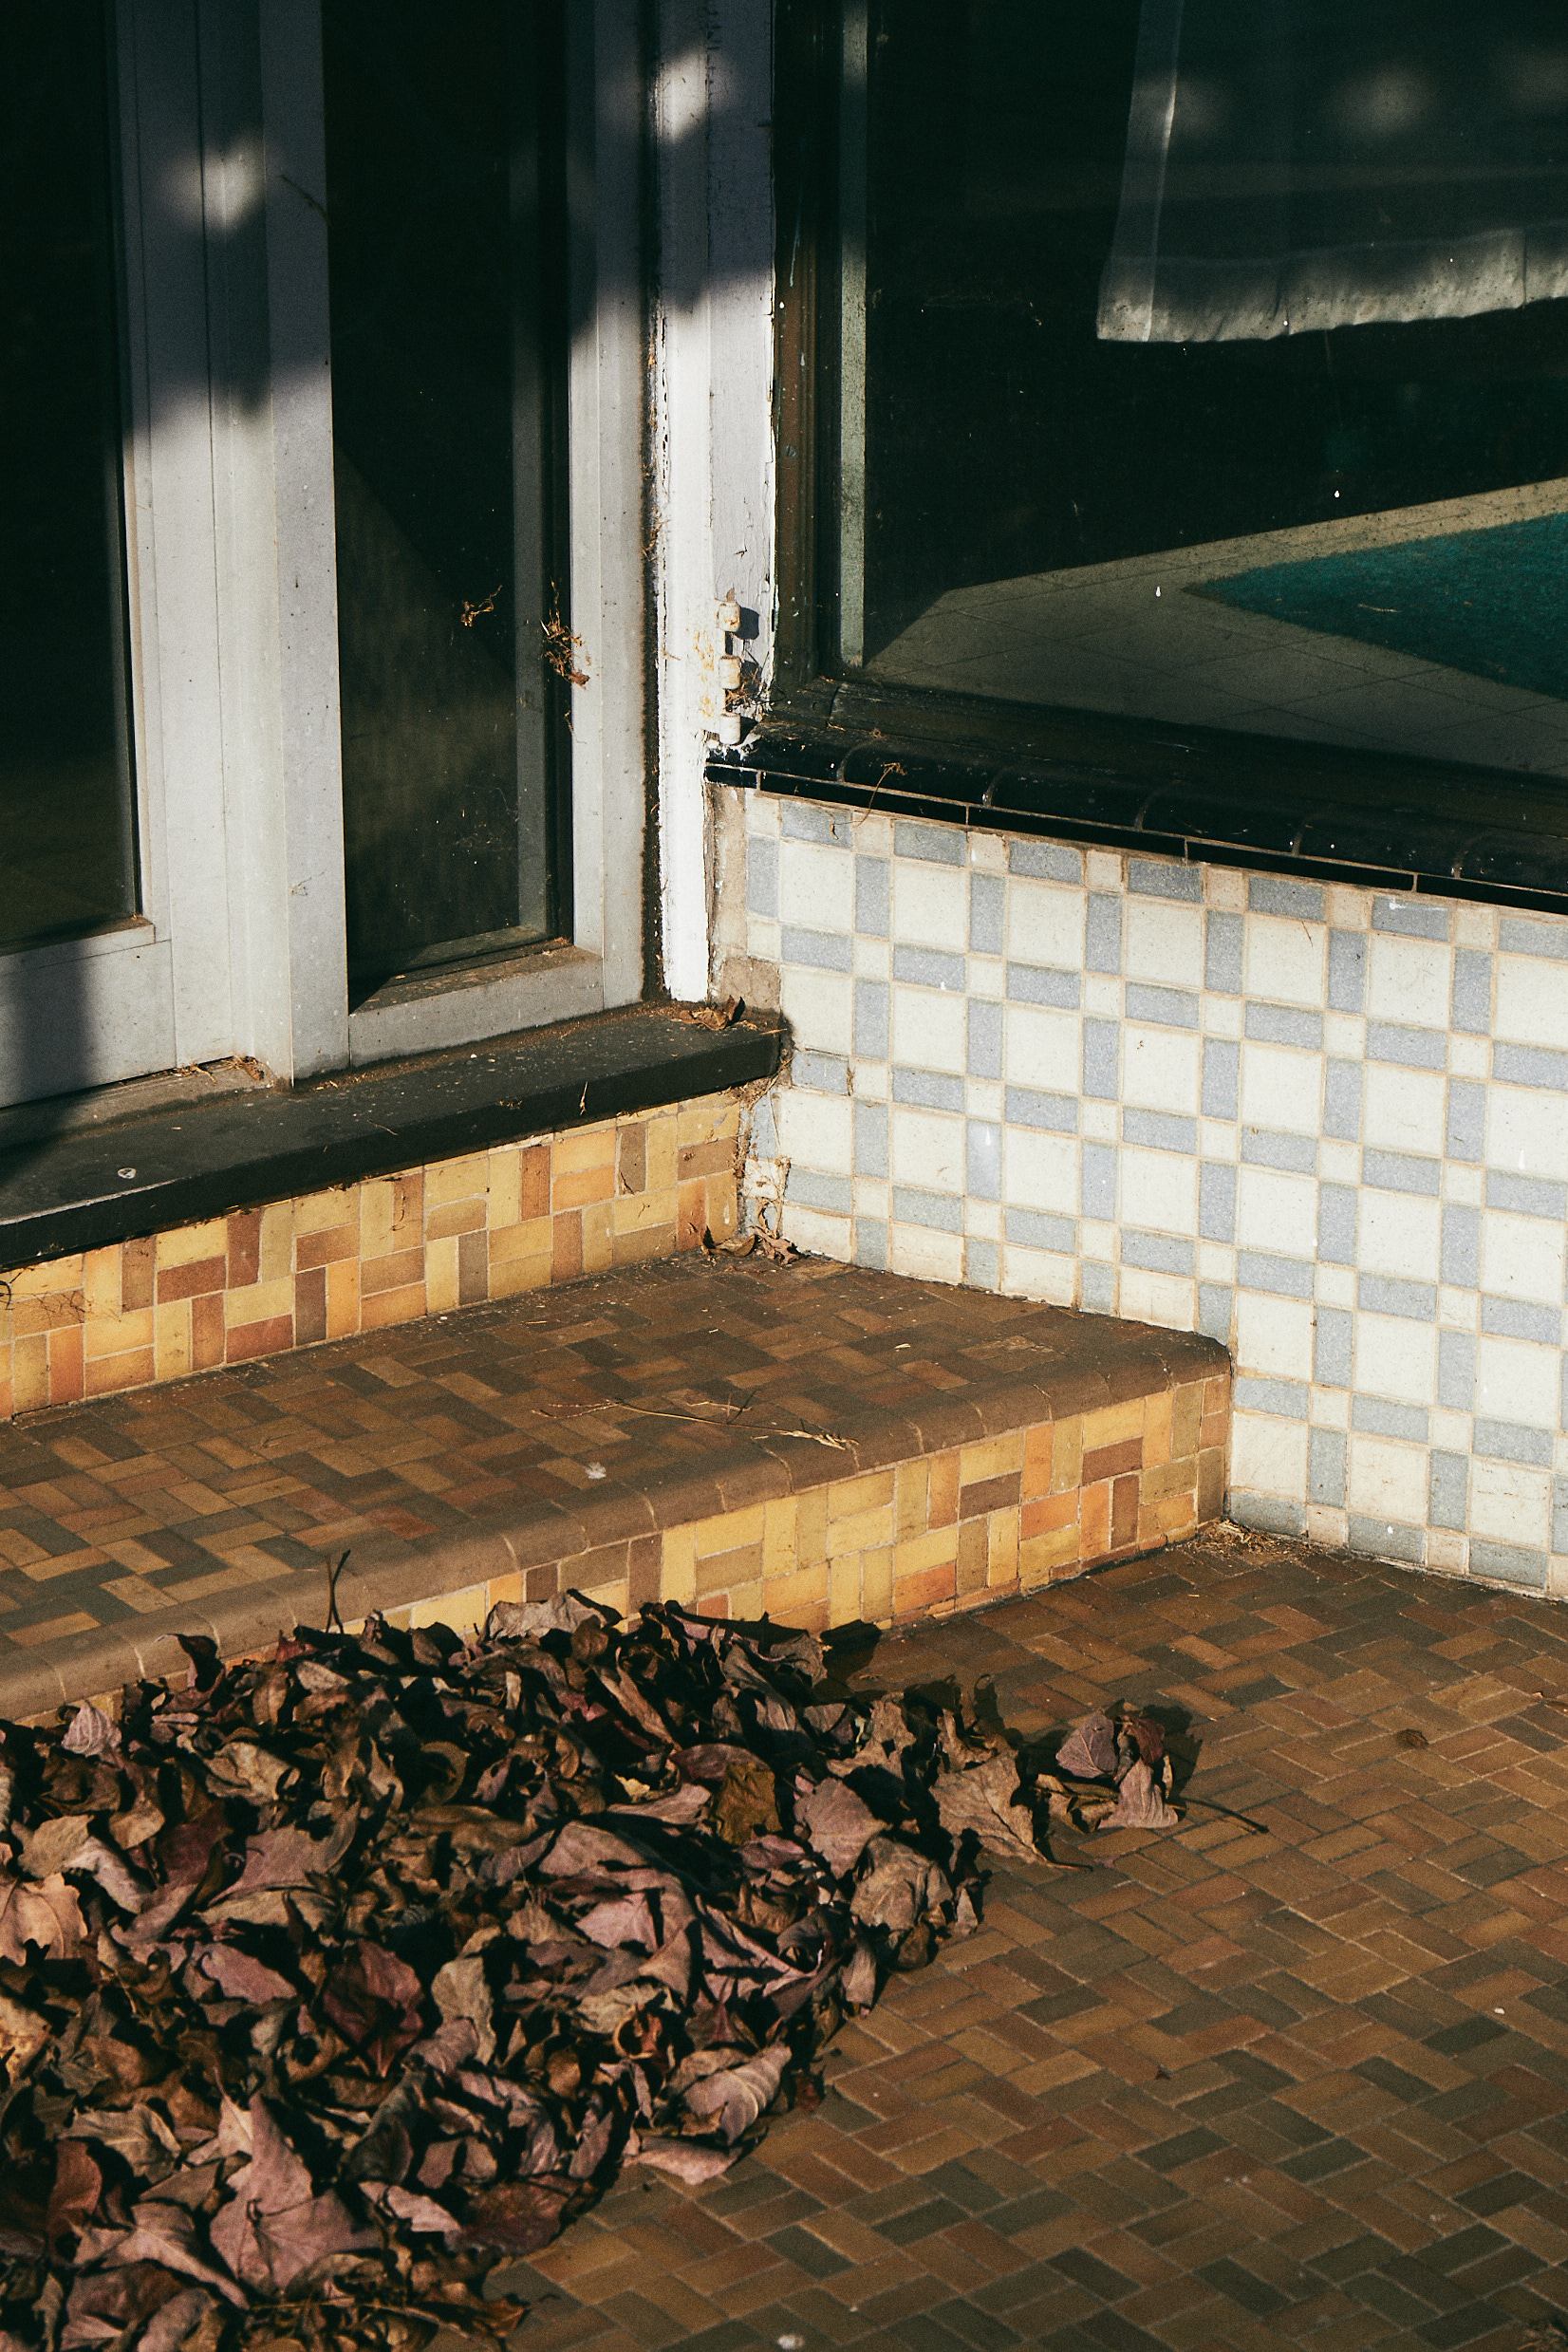 Leaves and Tiles